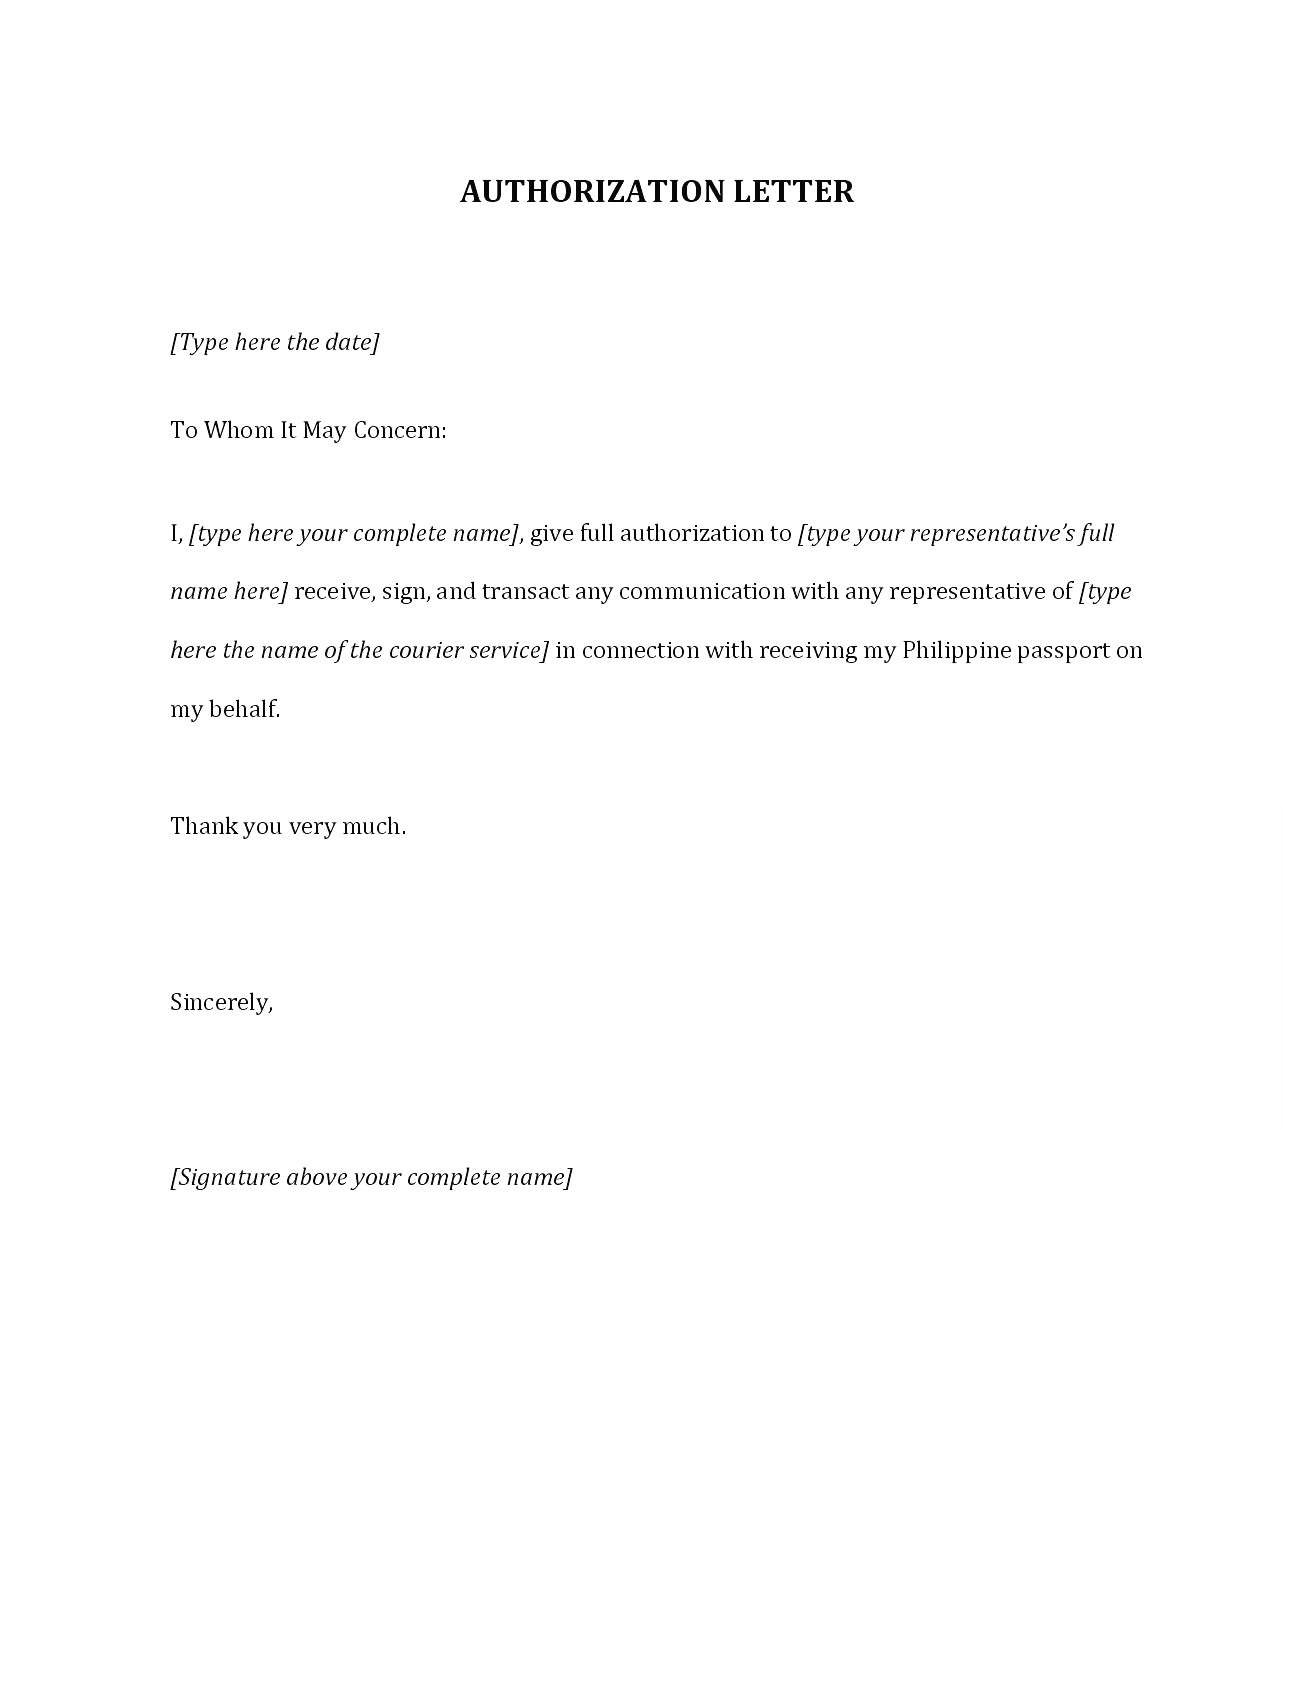 Letter of Authorization for Representative